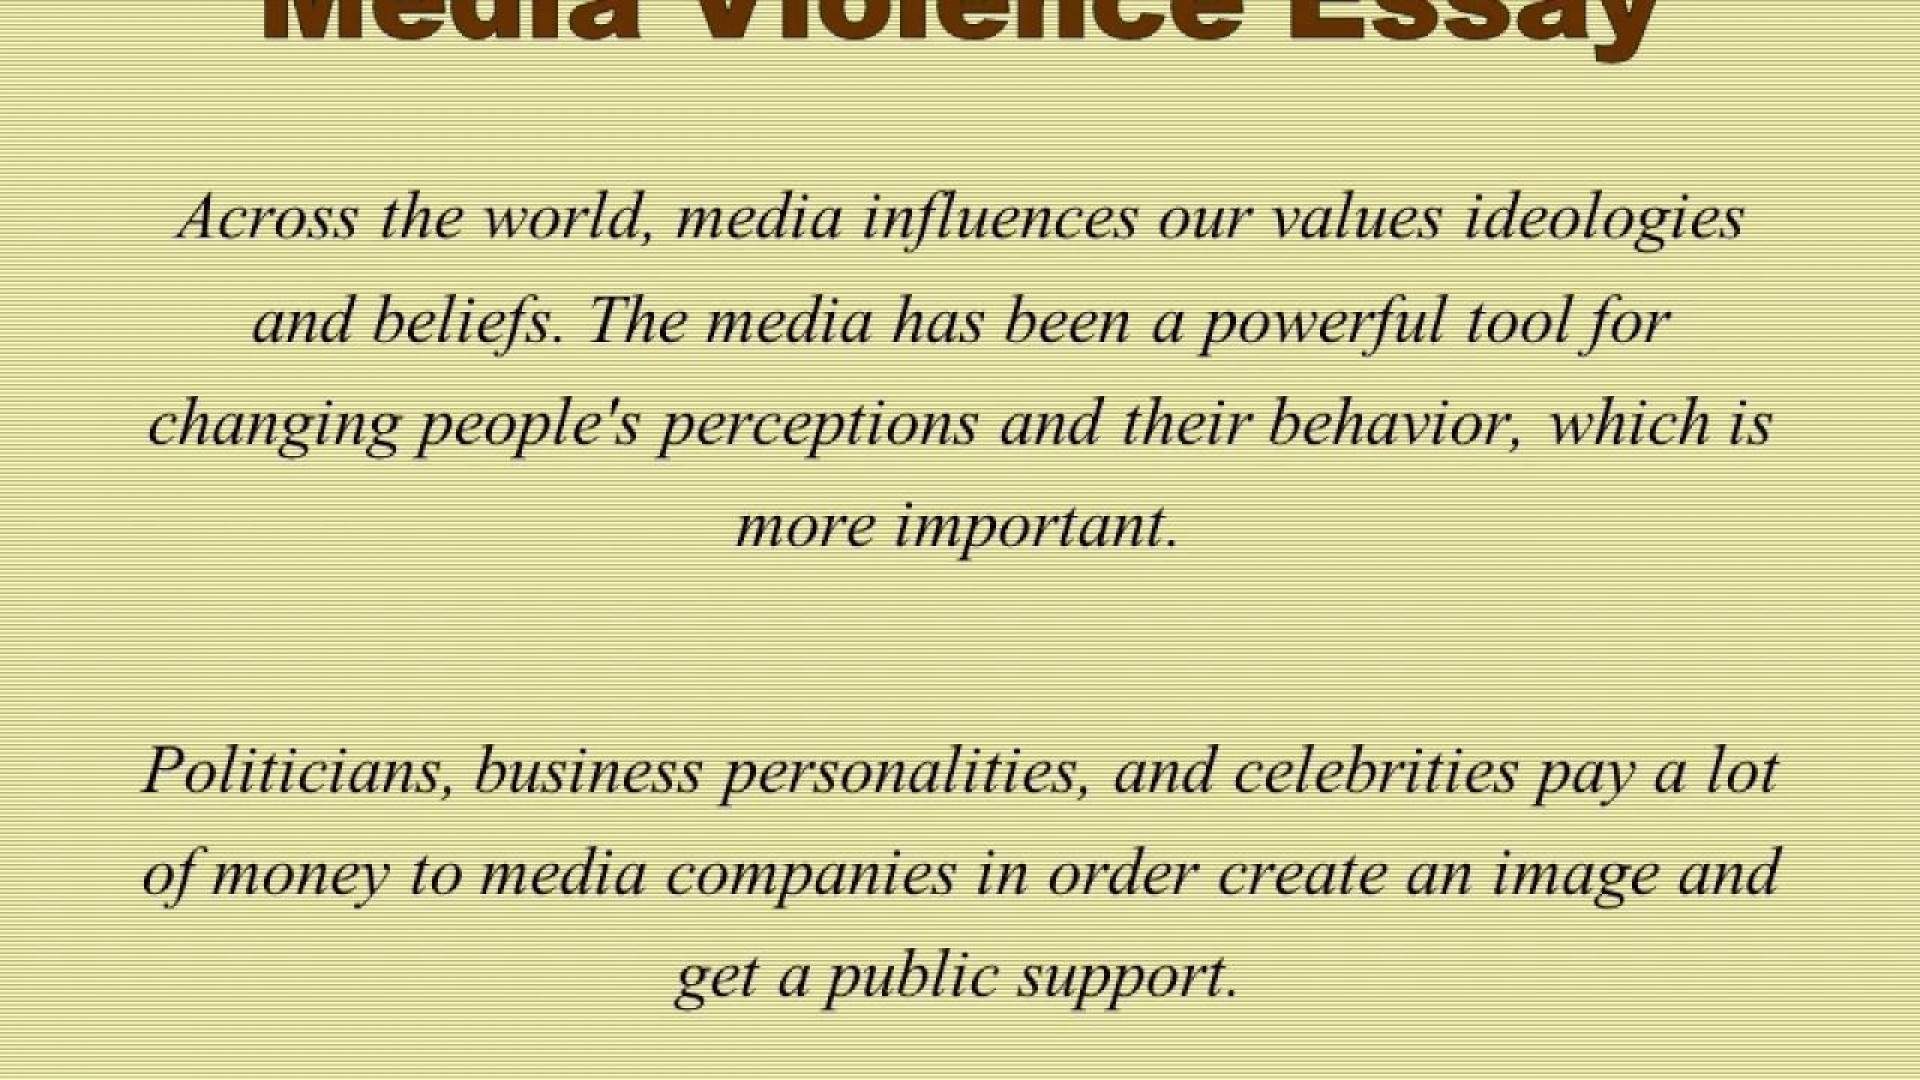 012 Media Violence Essay Example Imposing Television Outline Thesis Statement 1920